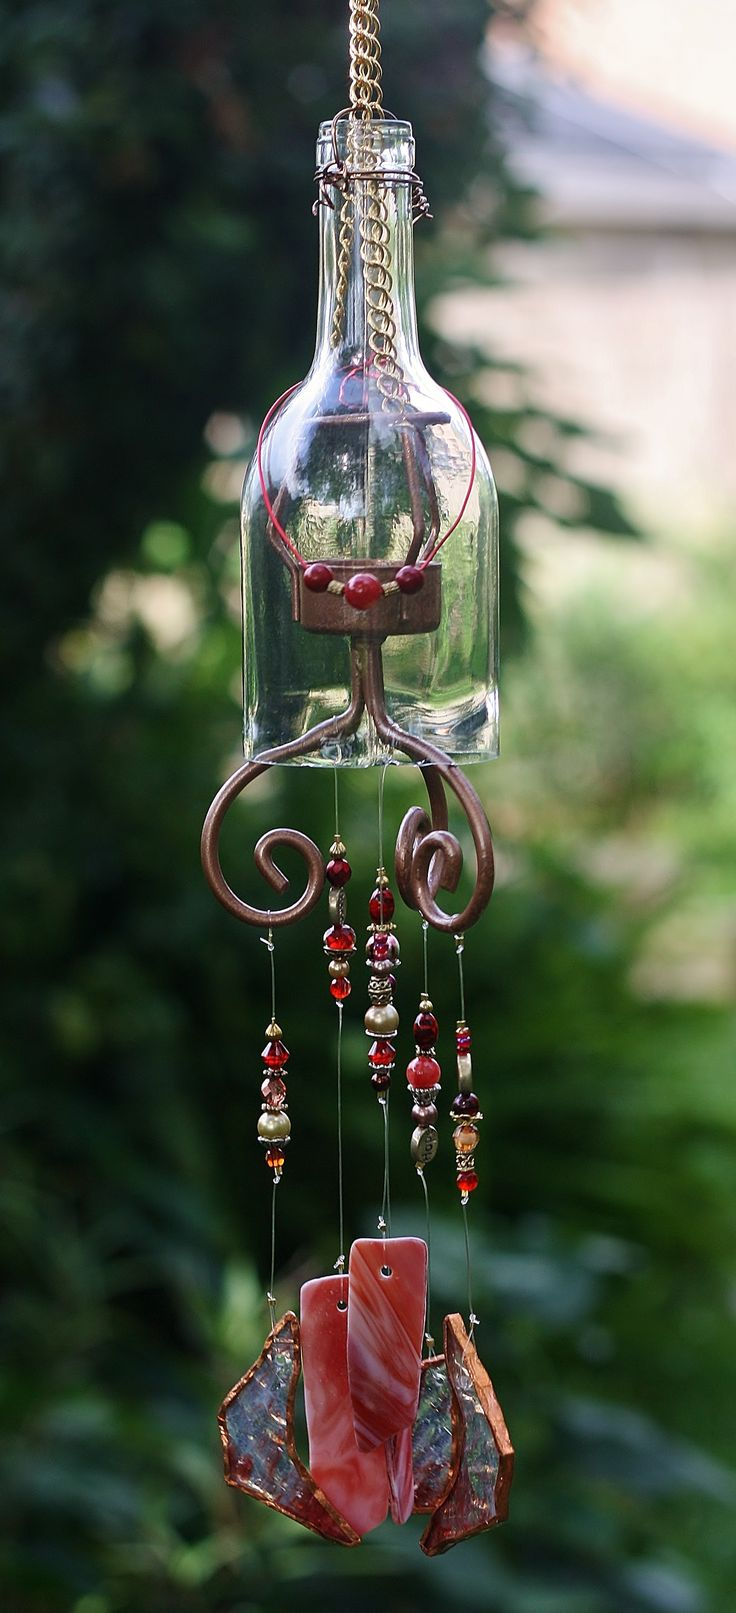 """""""Razzle Dazzle"""" - One of a kind stained glass wine bottle wind chime!"""